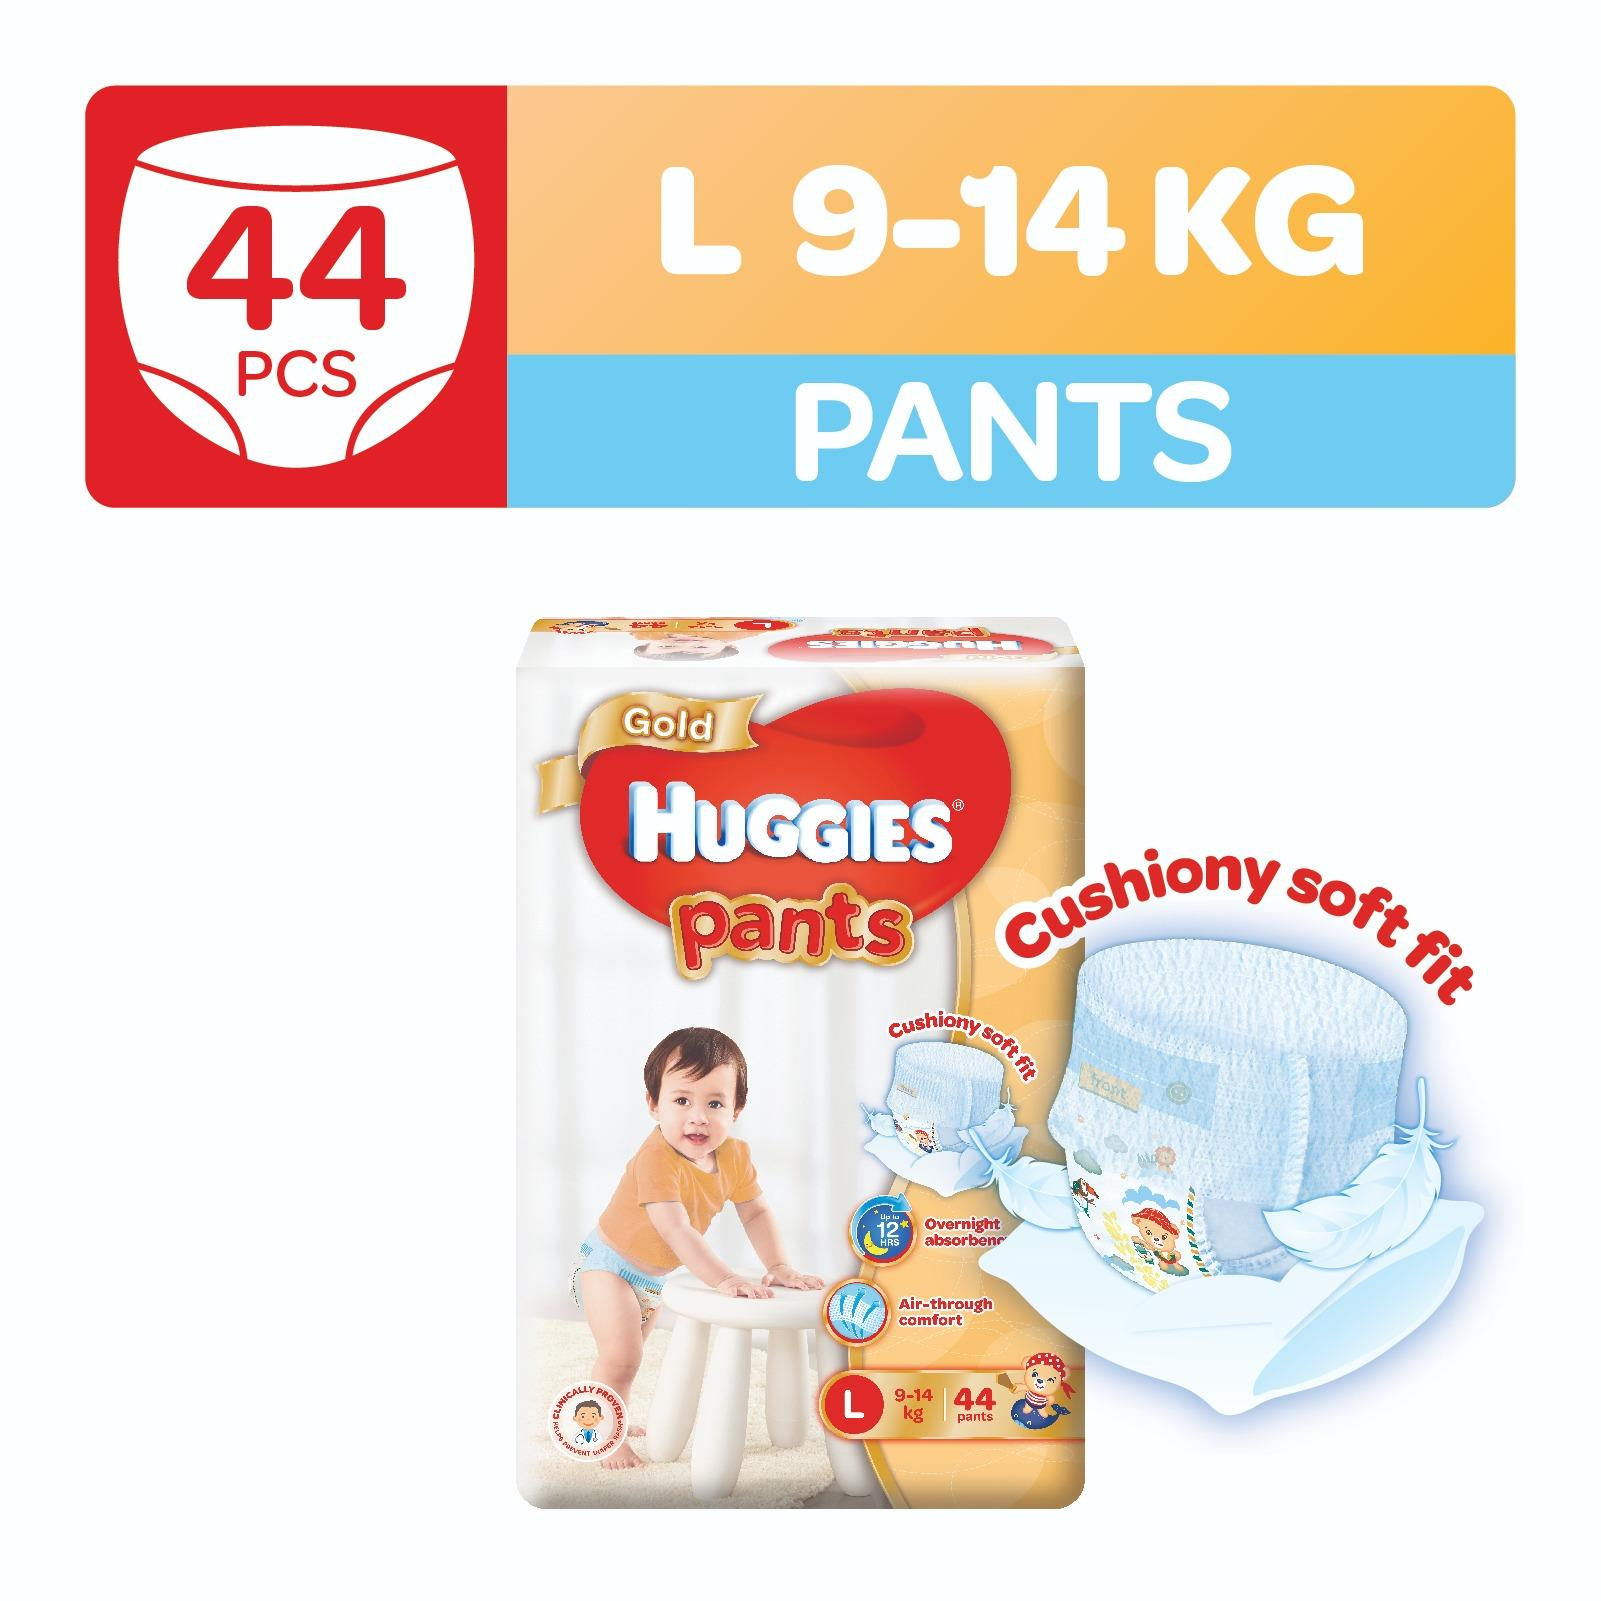 Buying Huggies Gold Pullup Pants L 44Pcs